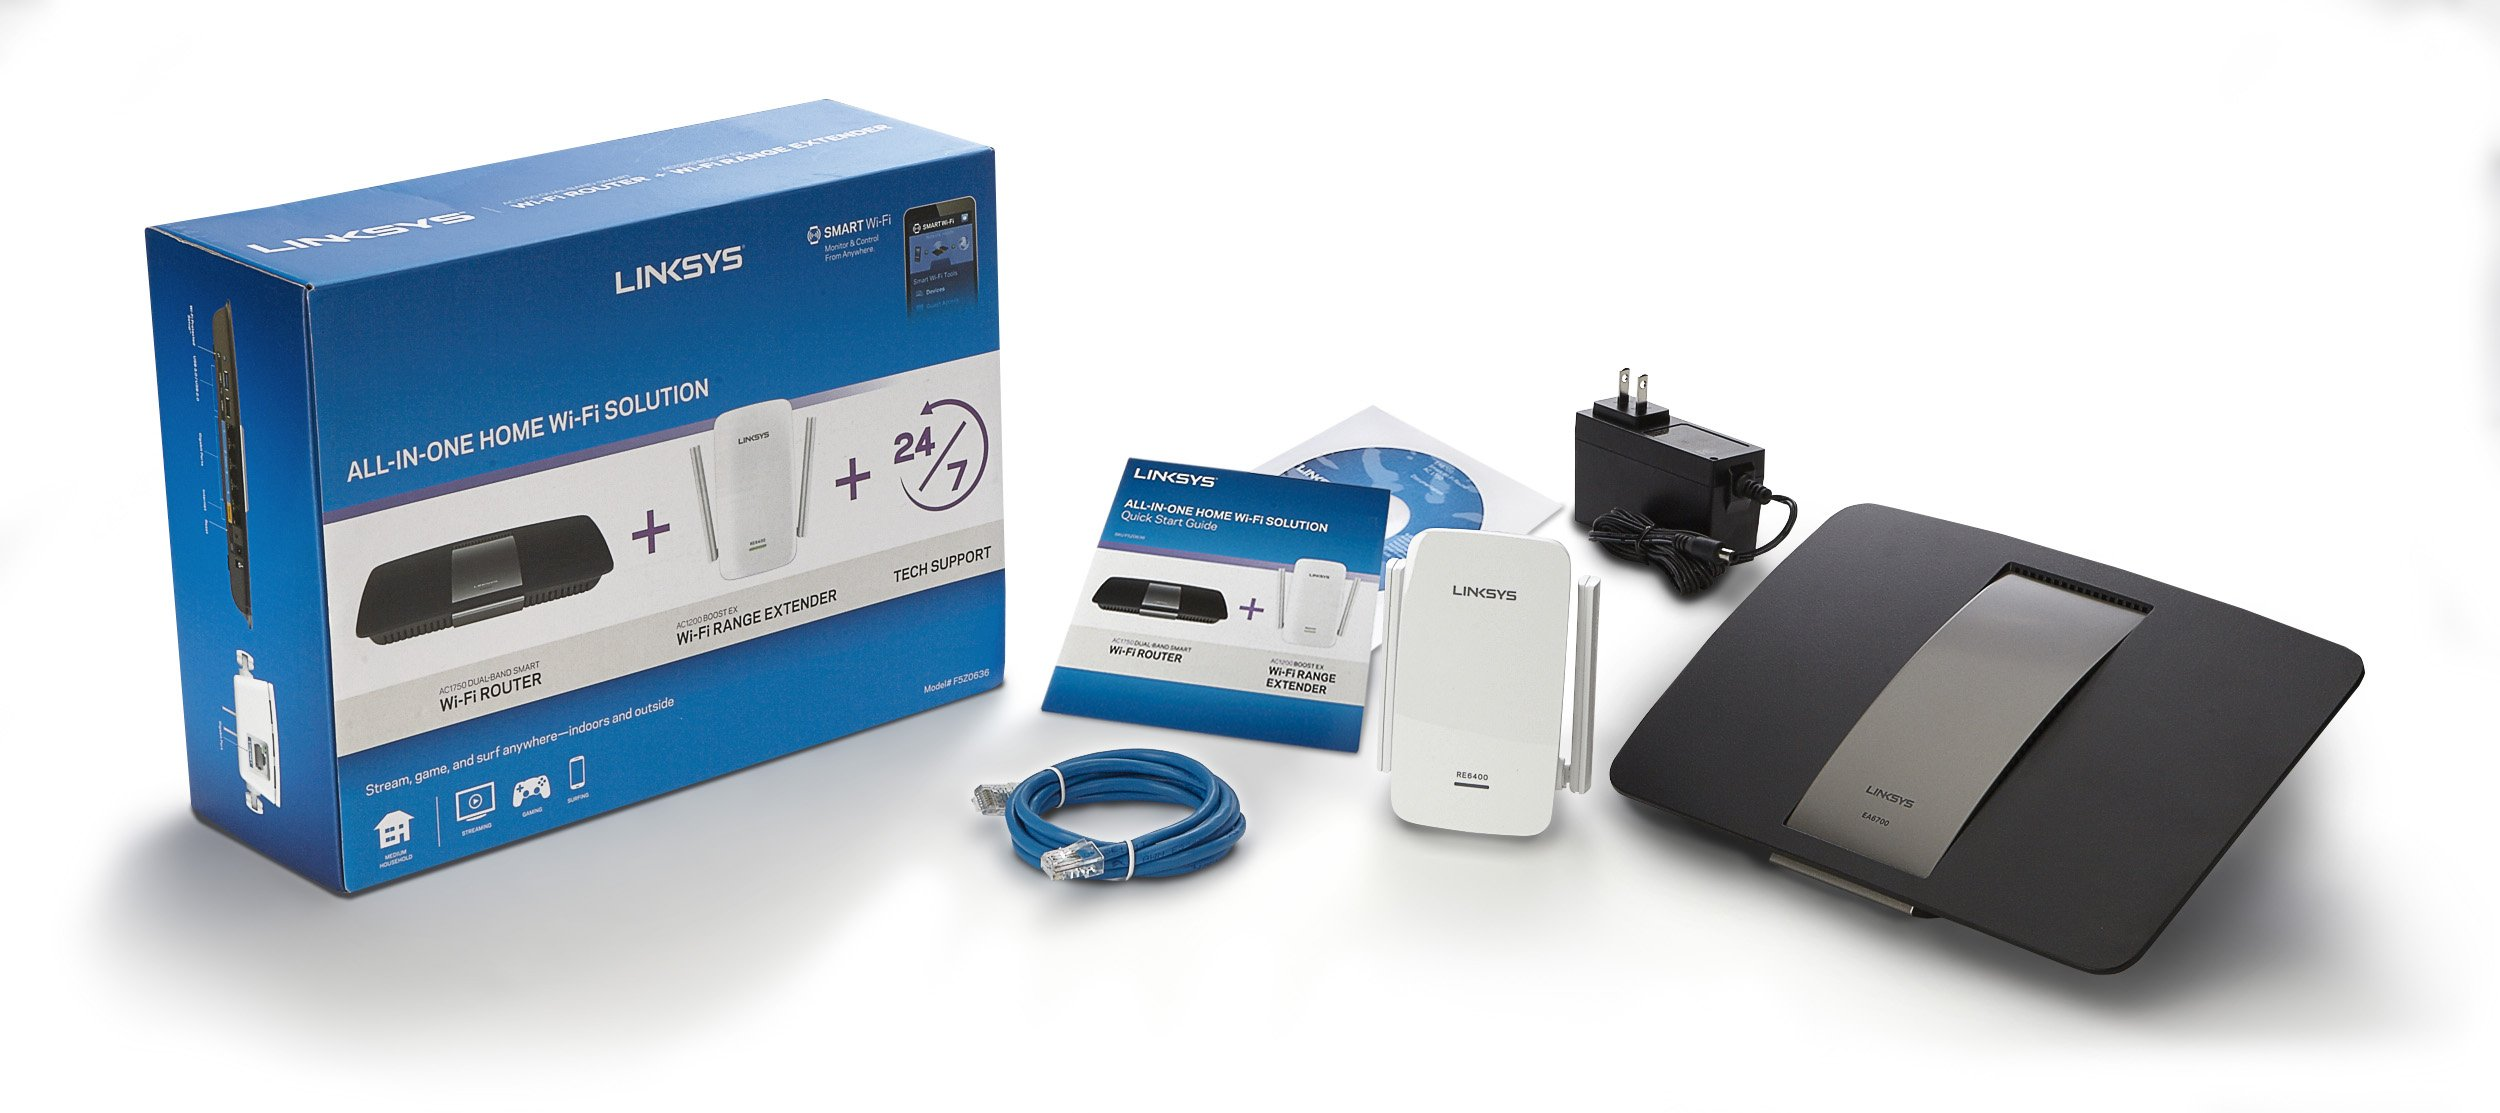 Linksys F5Z0636 All in One Home WiFi Solution Smart Router AC1750 and AC1200 Extender (Renewed) by Linksys